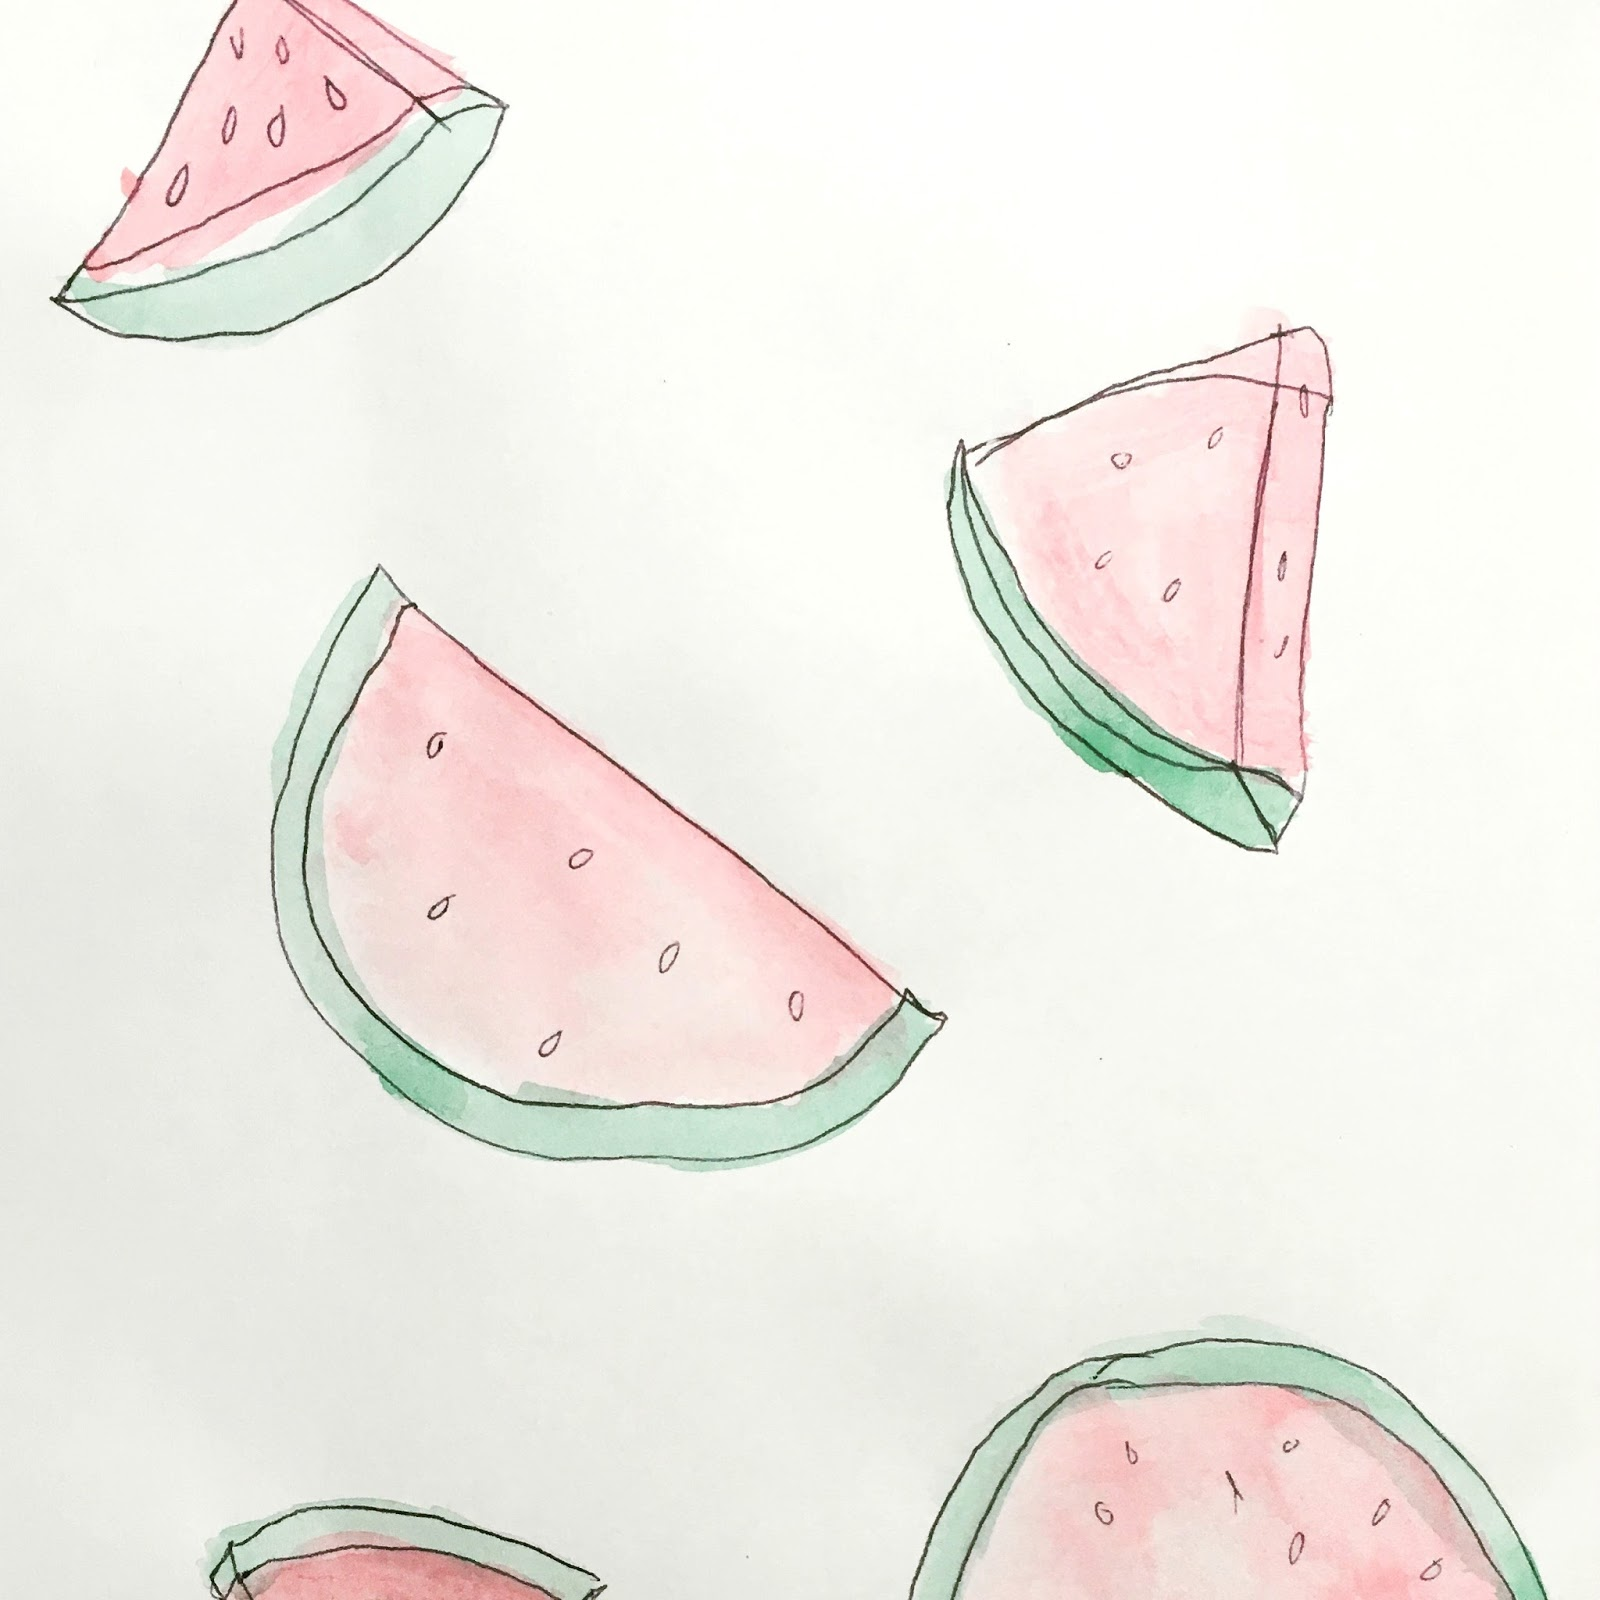 Sweet Allure I Decided To Start An Art Journal creative sketchs drawing watercolours painting doodles watermelon fun hobby